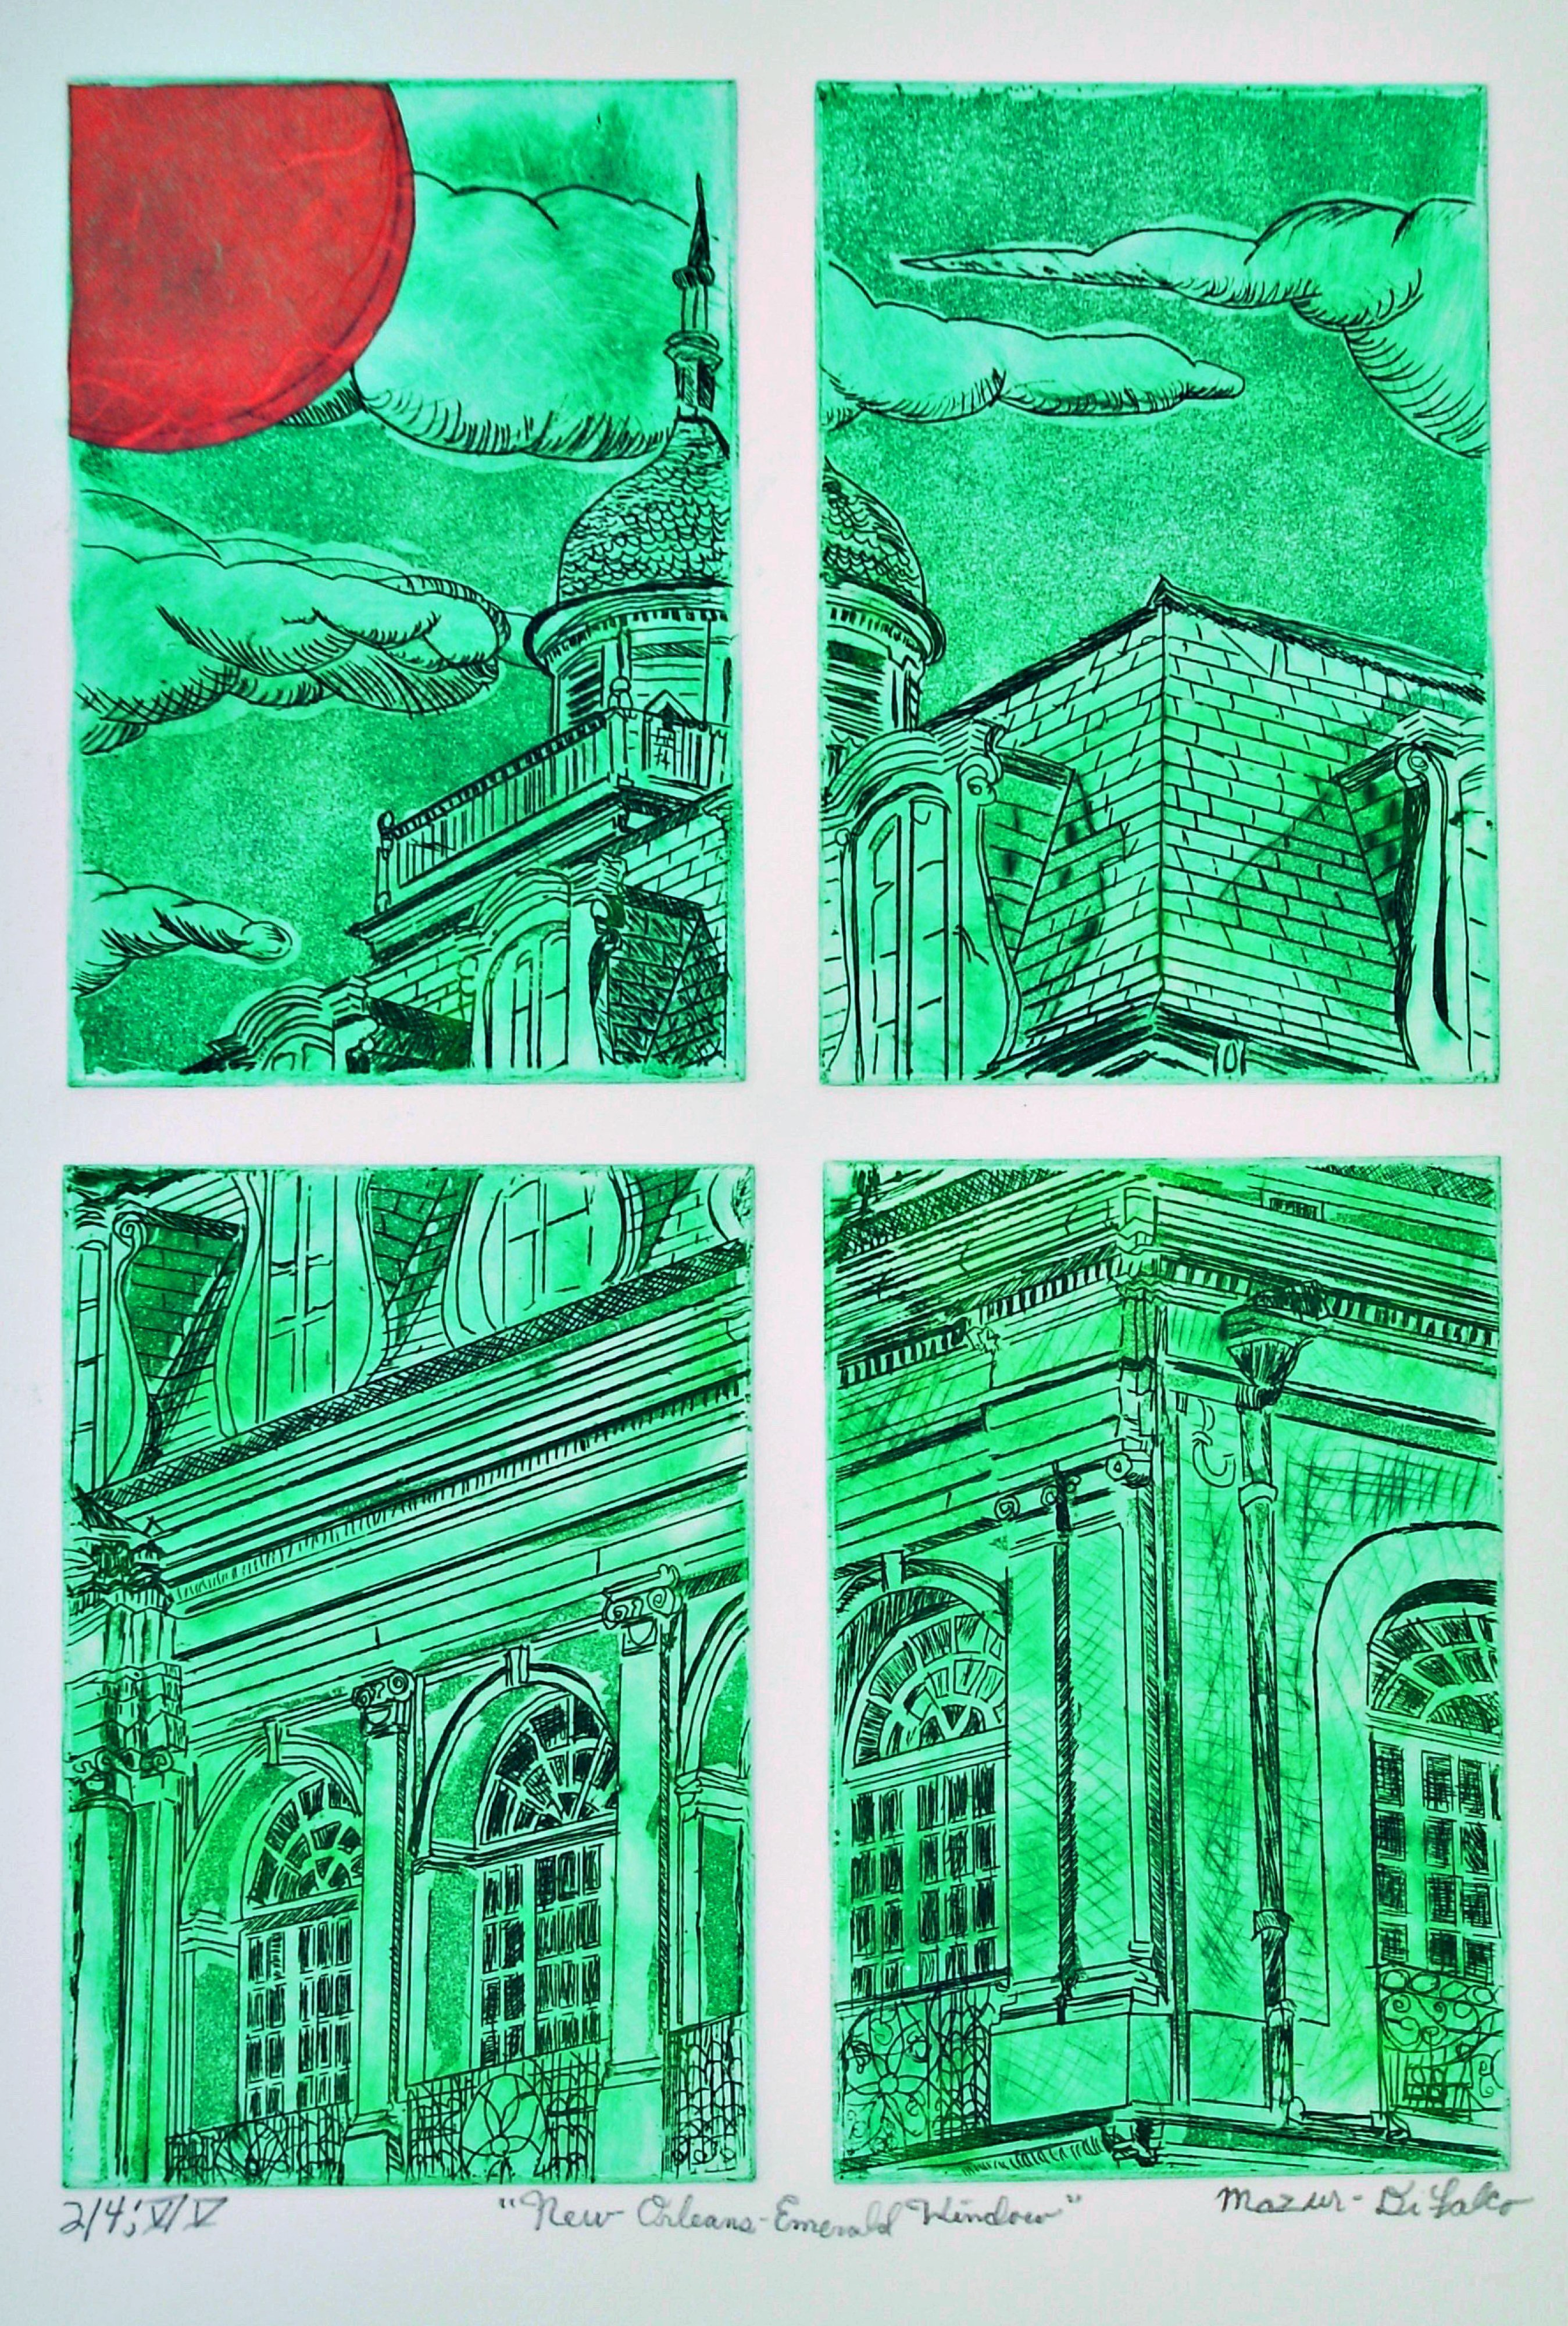 Jerry  Di Falco: 'new orleans emerald window', 2019 Intaglio, Architecture. Jerry Mazur- DiFalco created this distinctive etching via the employment of four separate zinc plates, which were placed simultaneously on the printing press bedaEUR